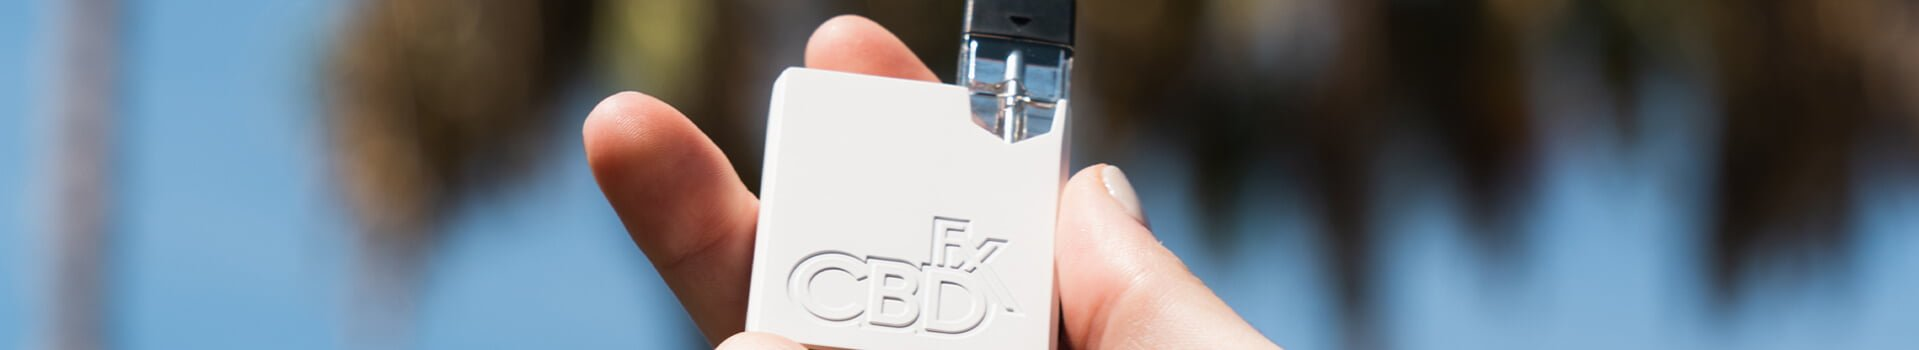 CBDfx Now Offers Two CBD Vape Kits